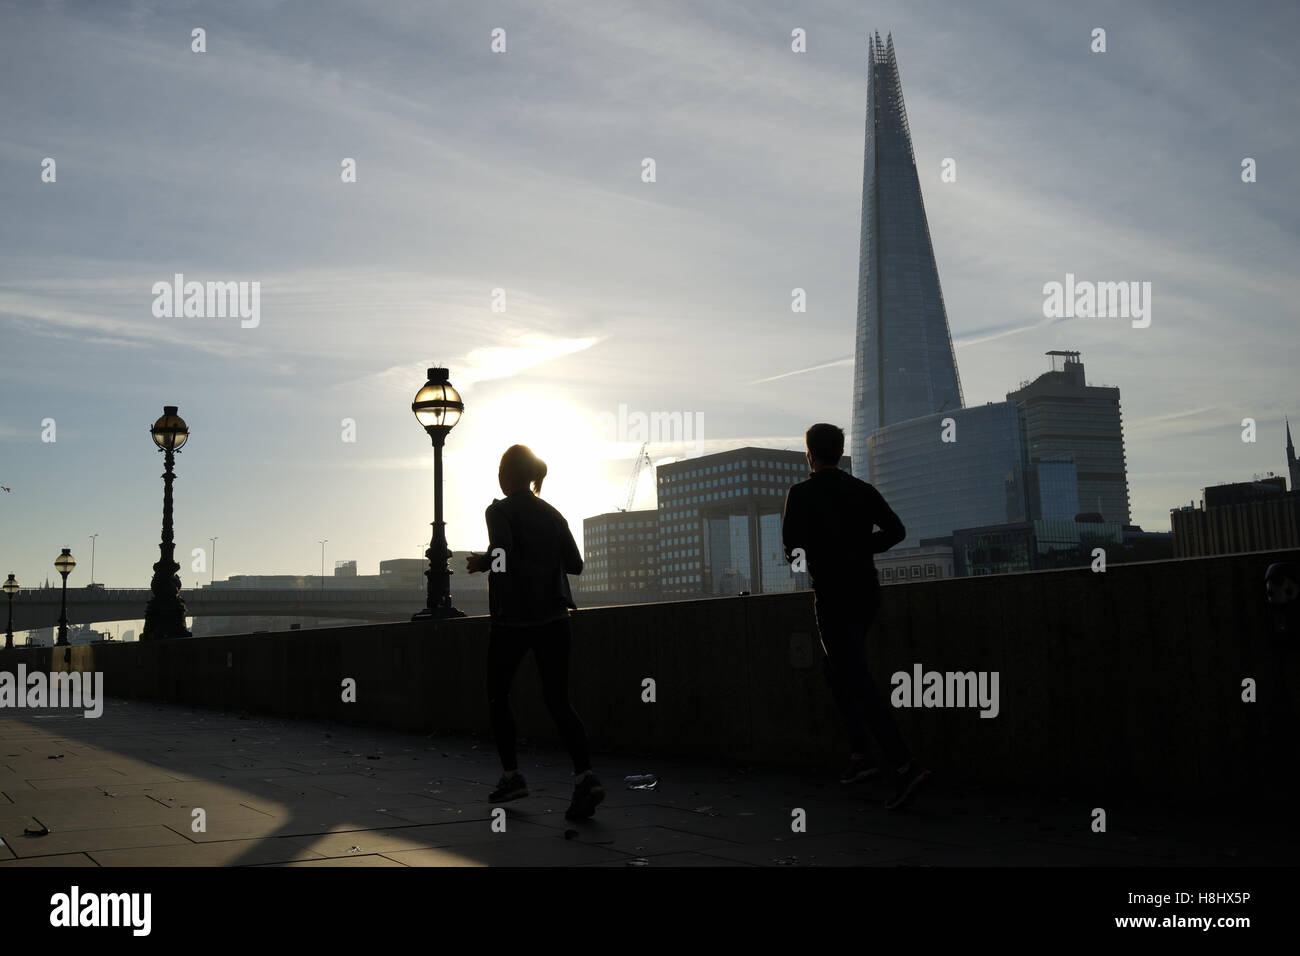 A couple running along the Thames river, London Stock Foto